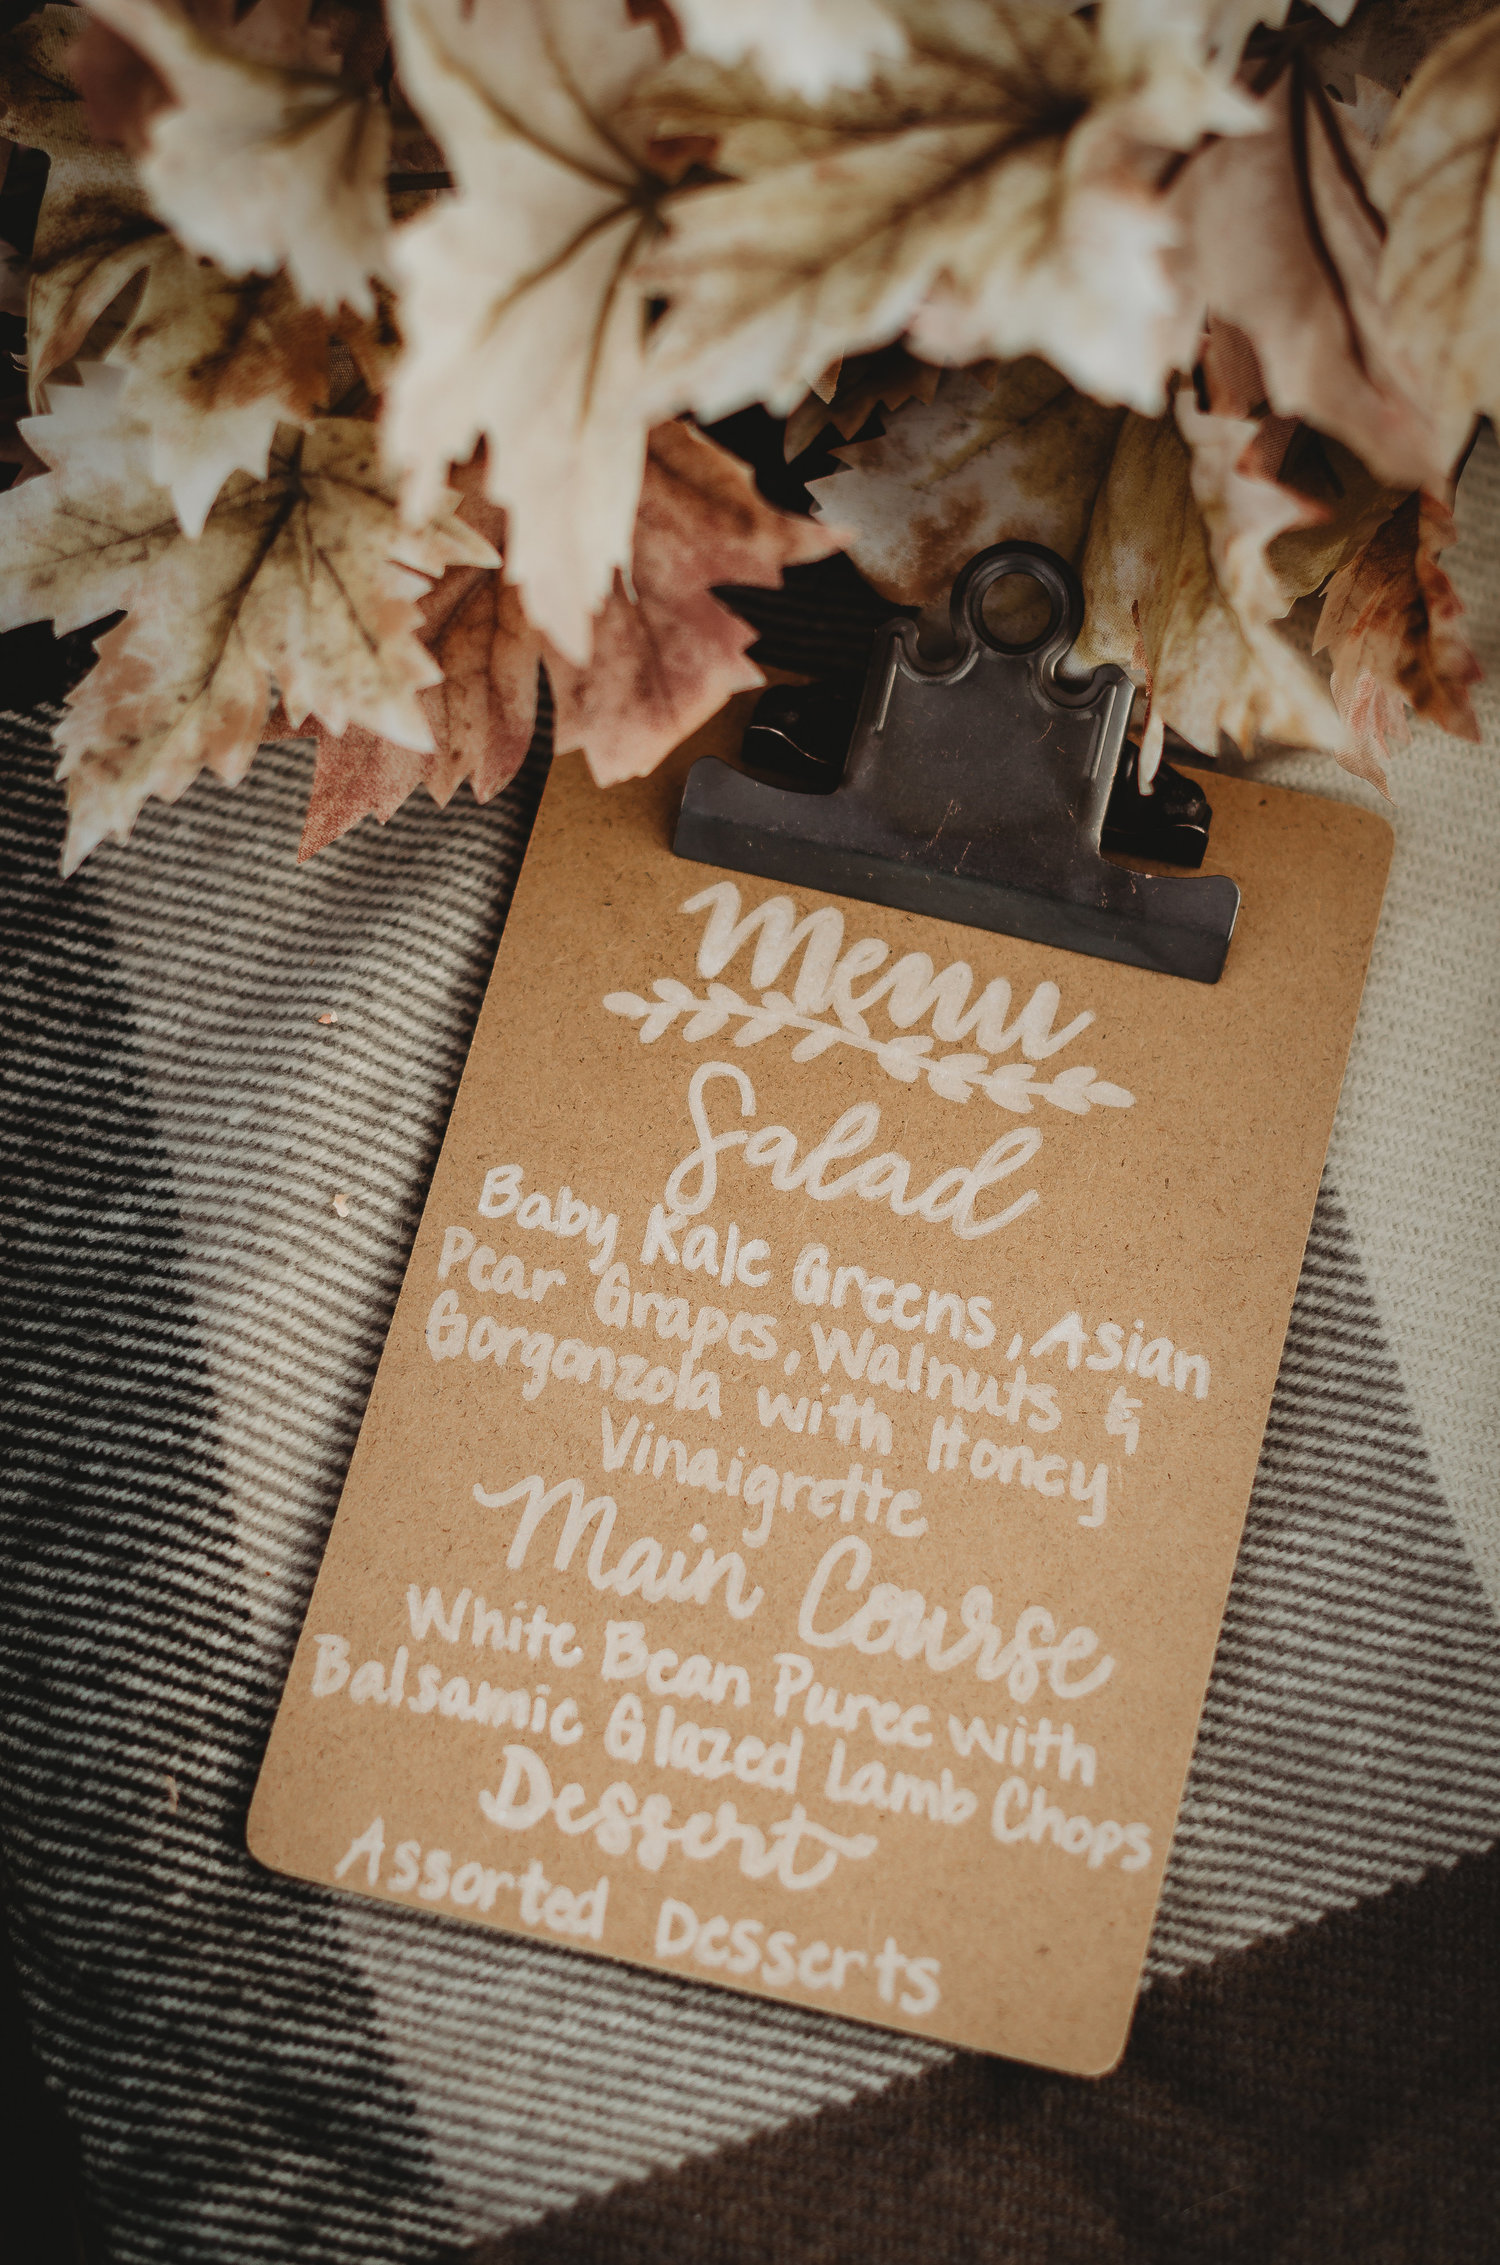 Bridal Shower Menu DIY - instead of attaching paper to mini clipboards - you can write directly on the clipboard with a white calligraphy pen. Click to see even more details of this fall bridal shower by party stylist Mint Event Design. #bridalshowers #bridalshowerideas #rusticwedding #rusticbridalshower #bridalshowerdecor #farmwedding #menu #calligraphy #bridalshowerdiy